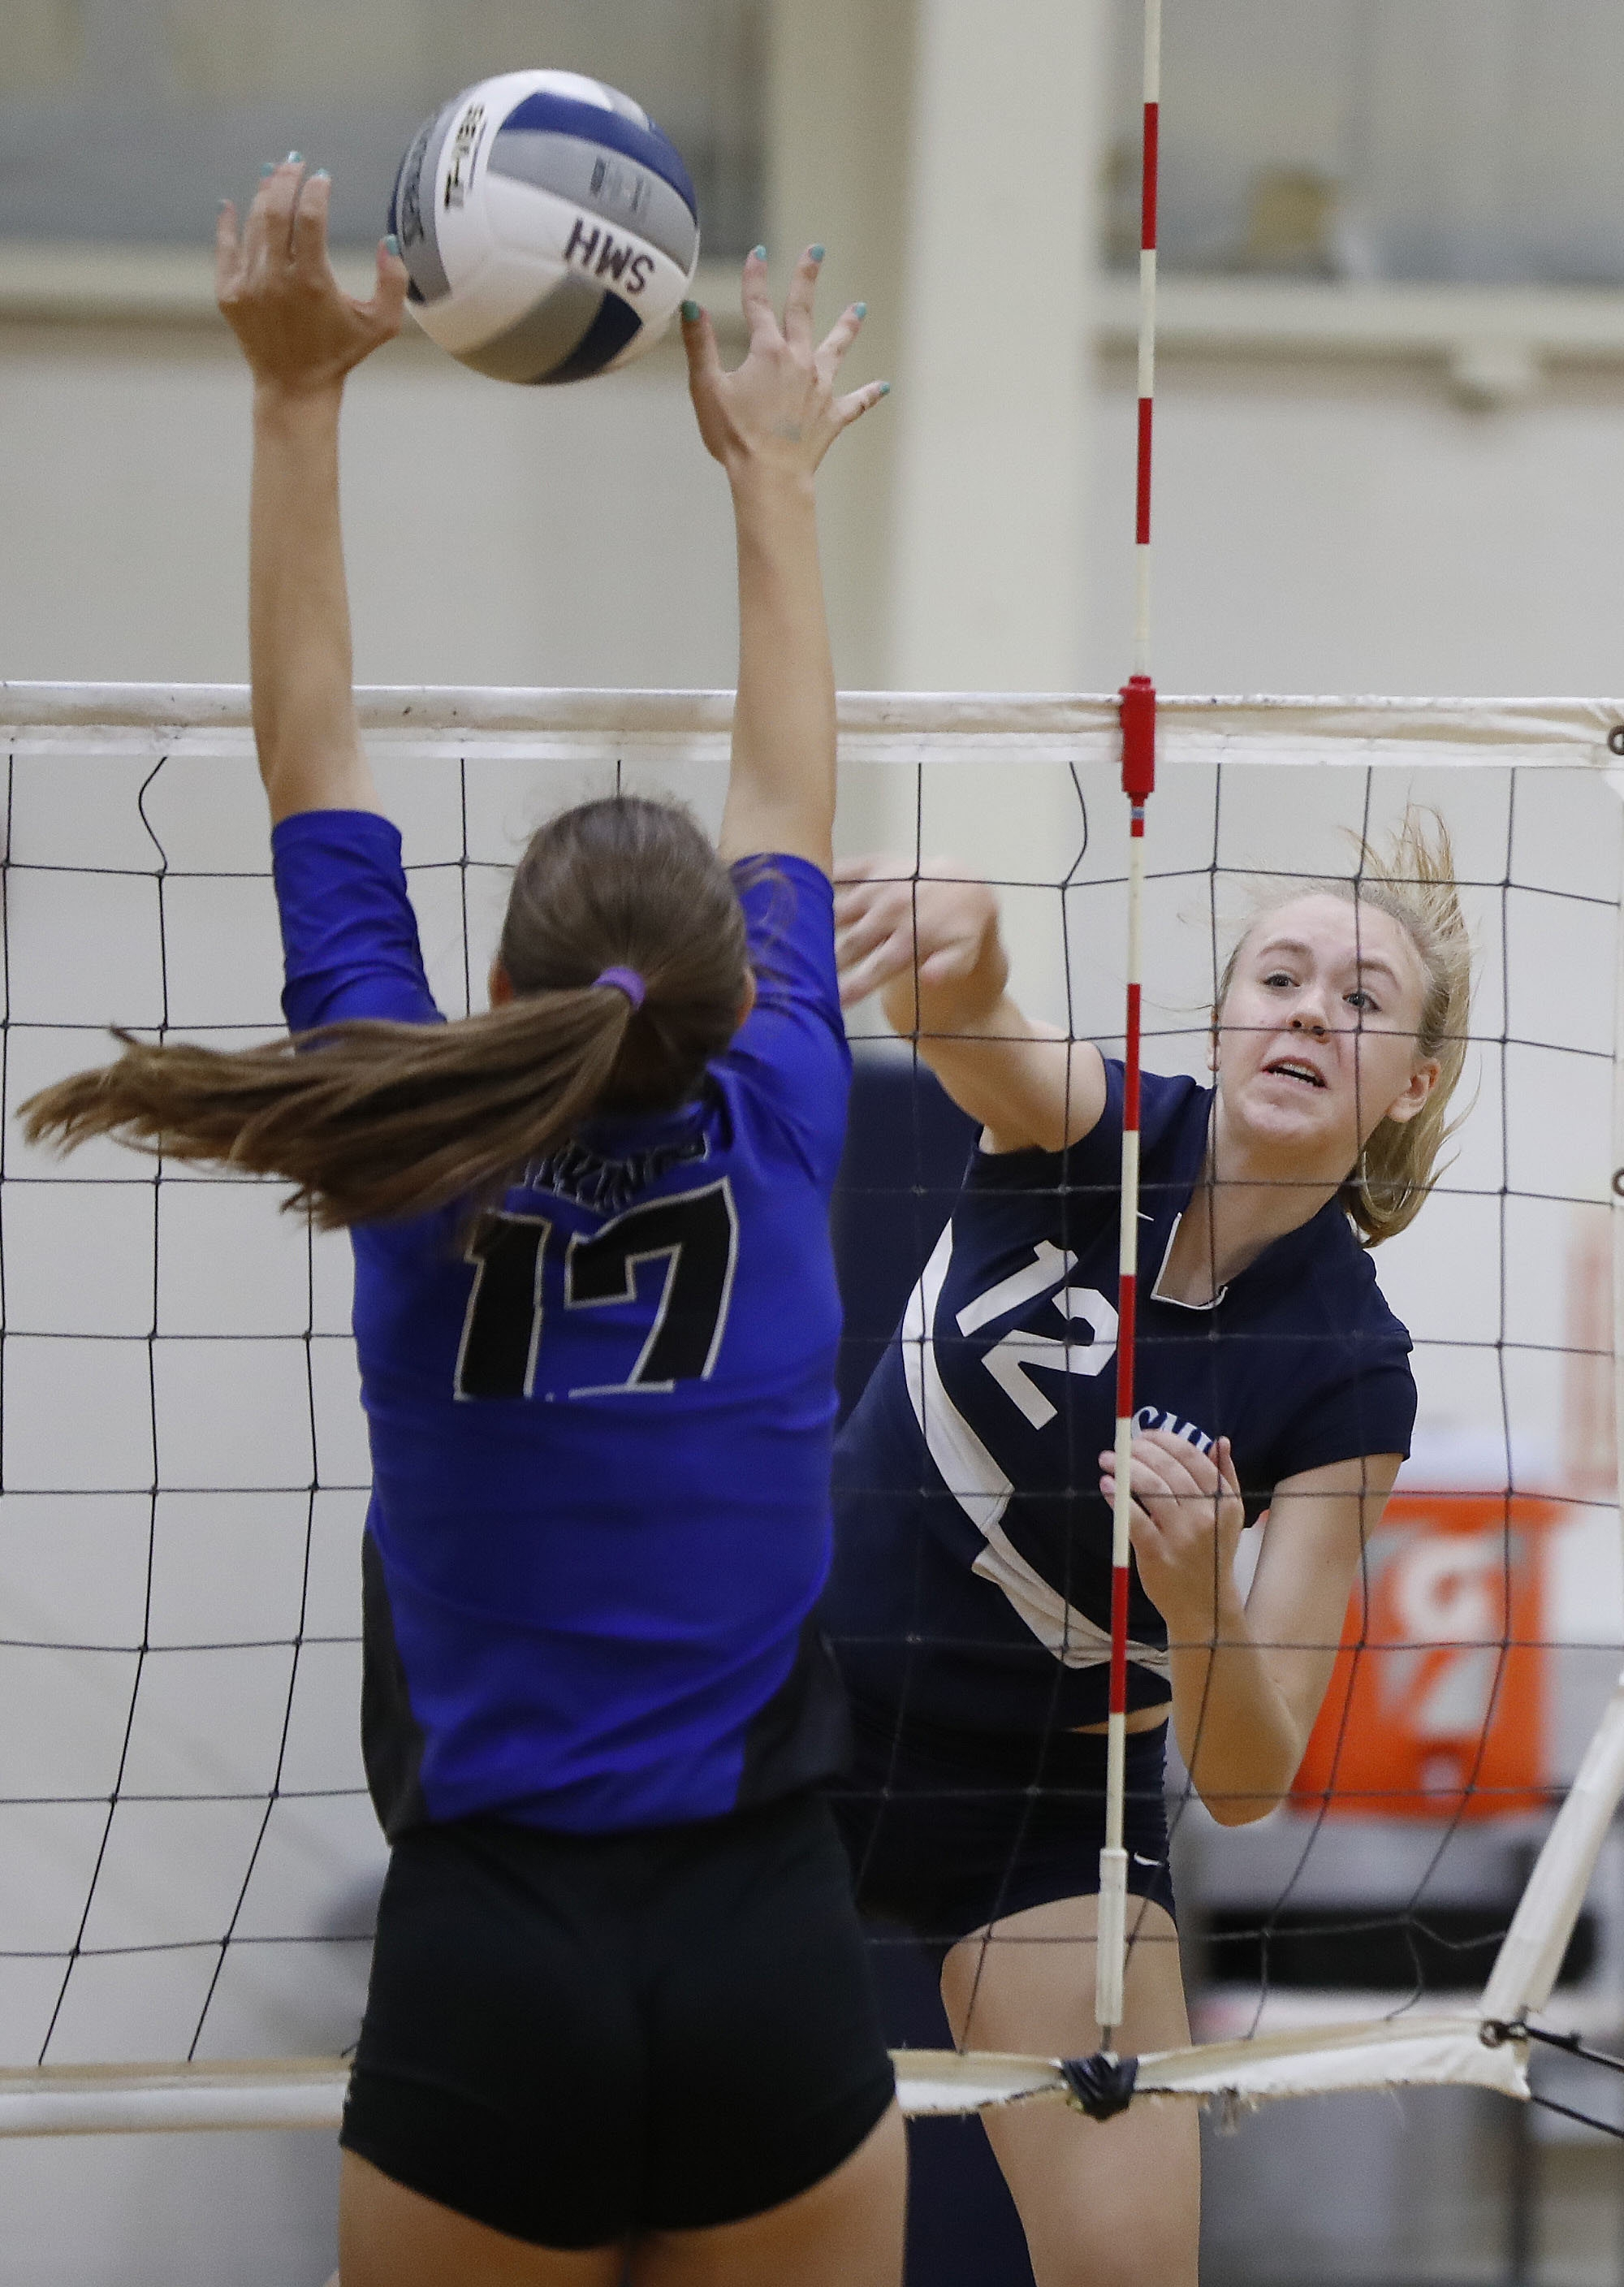 St. Mary's Summer Slade and the strong St. Mary's volleyball program are off to a great start.